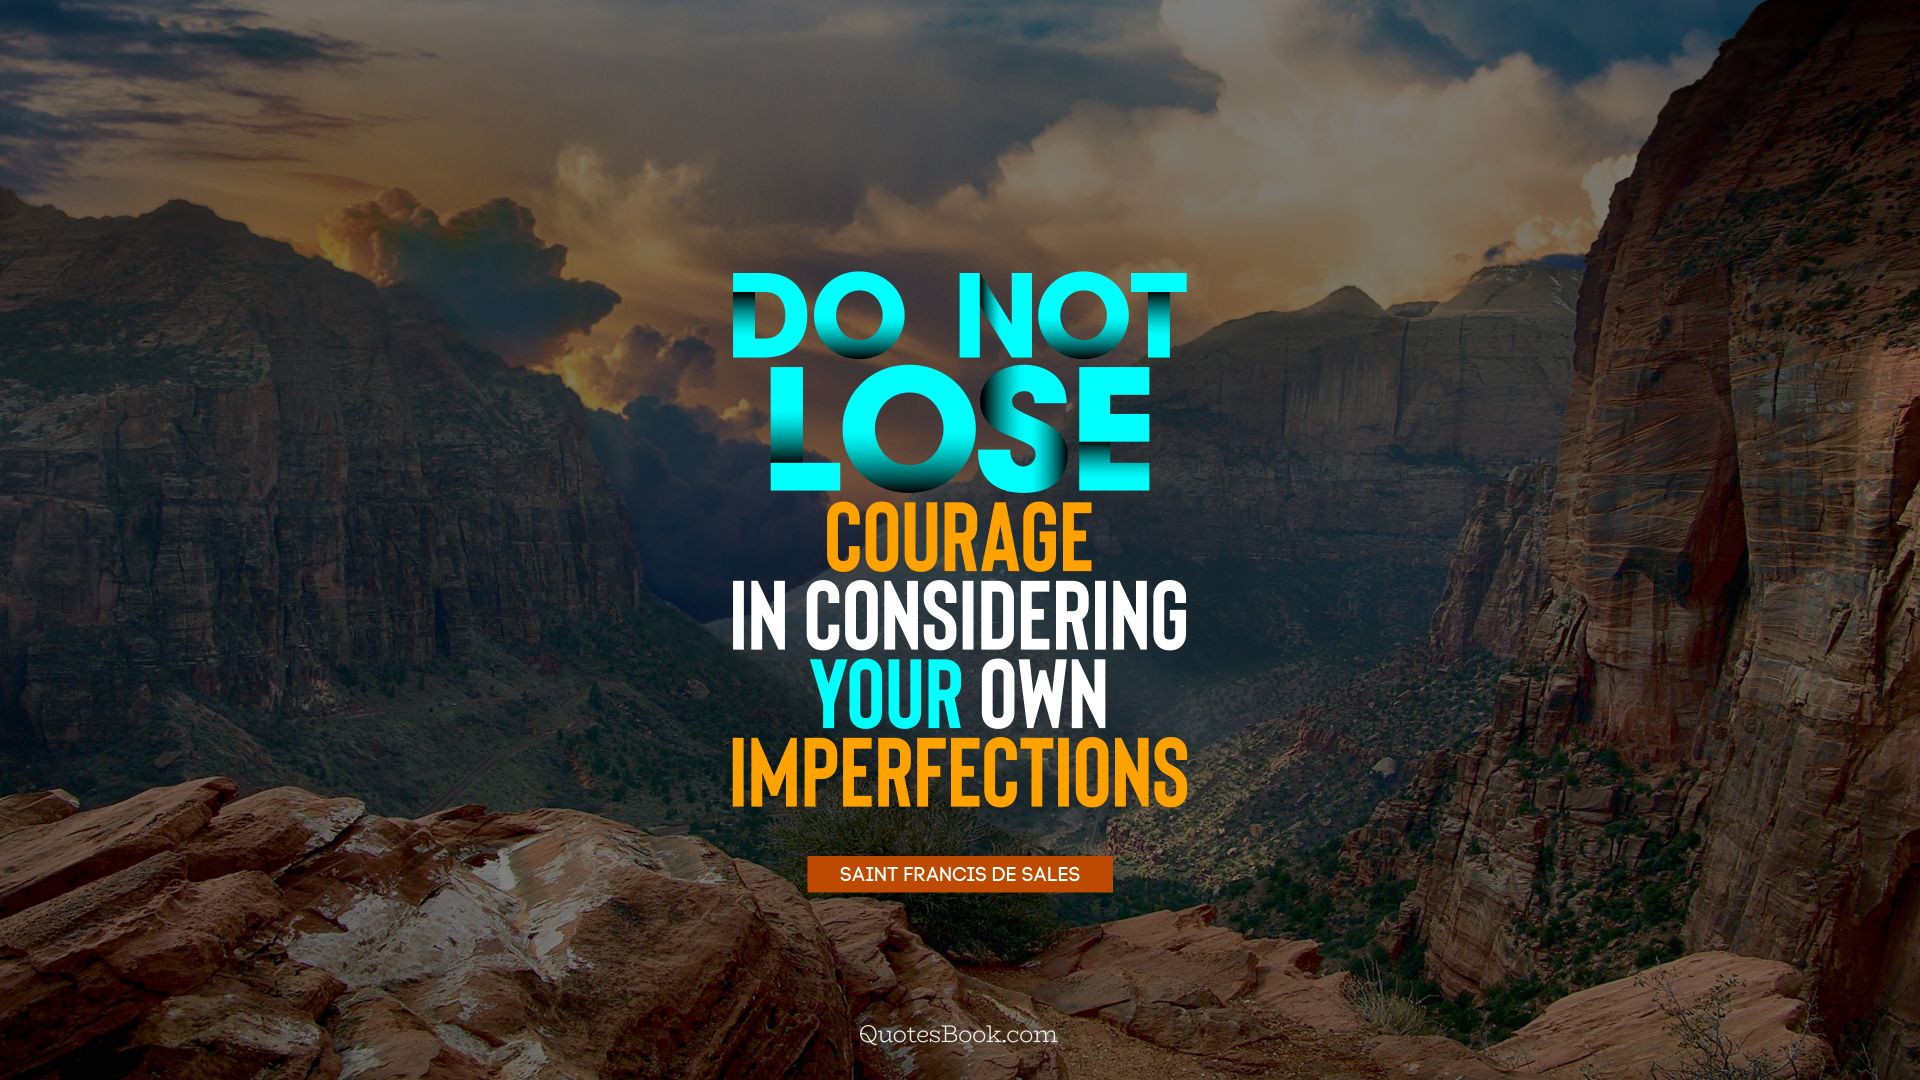 Do not lose courage in considering your own imperfections. - Quote by Saint Francis de Sales